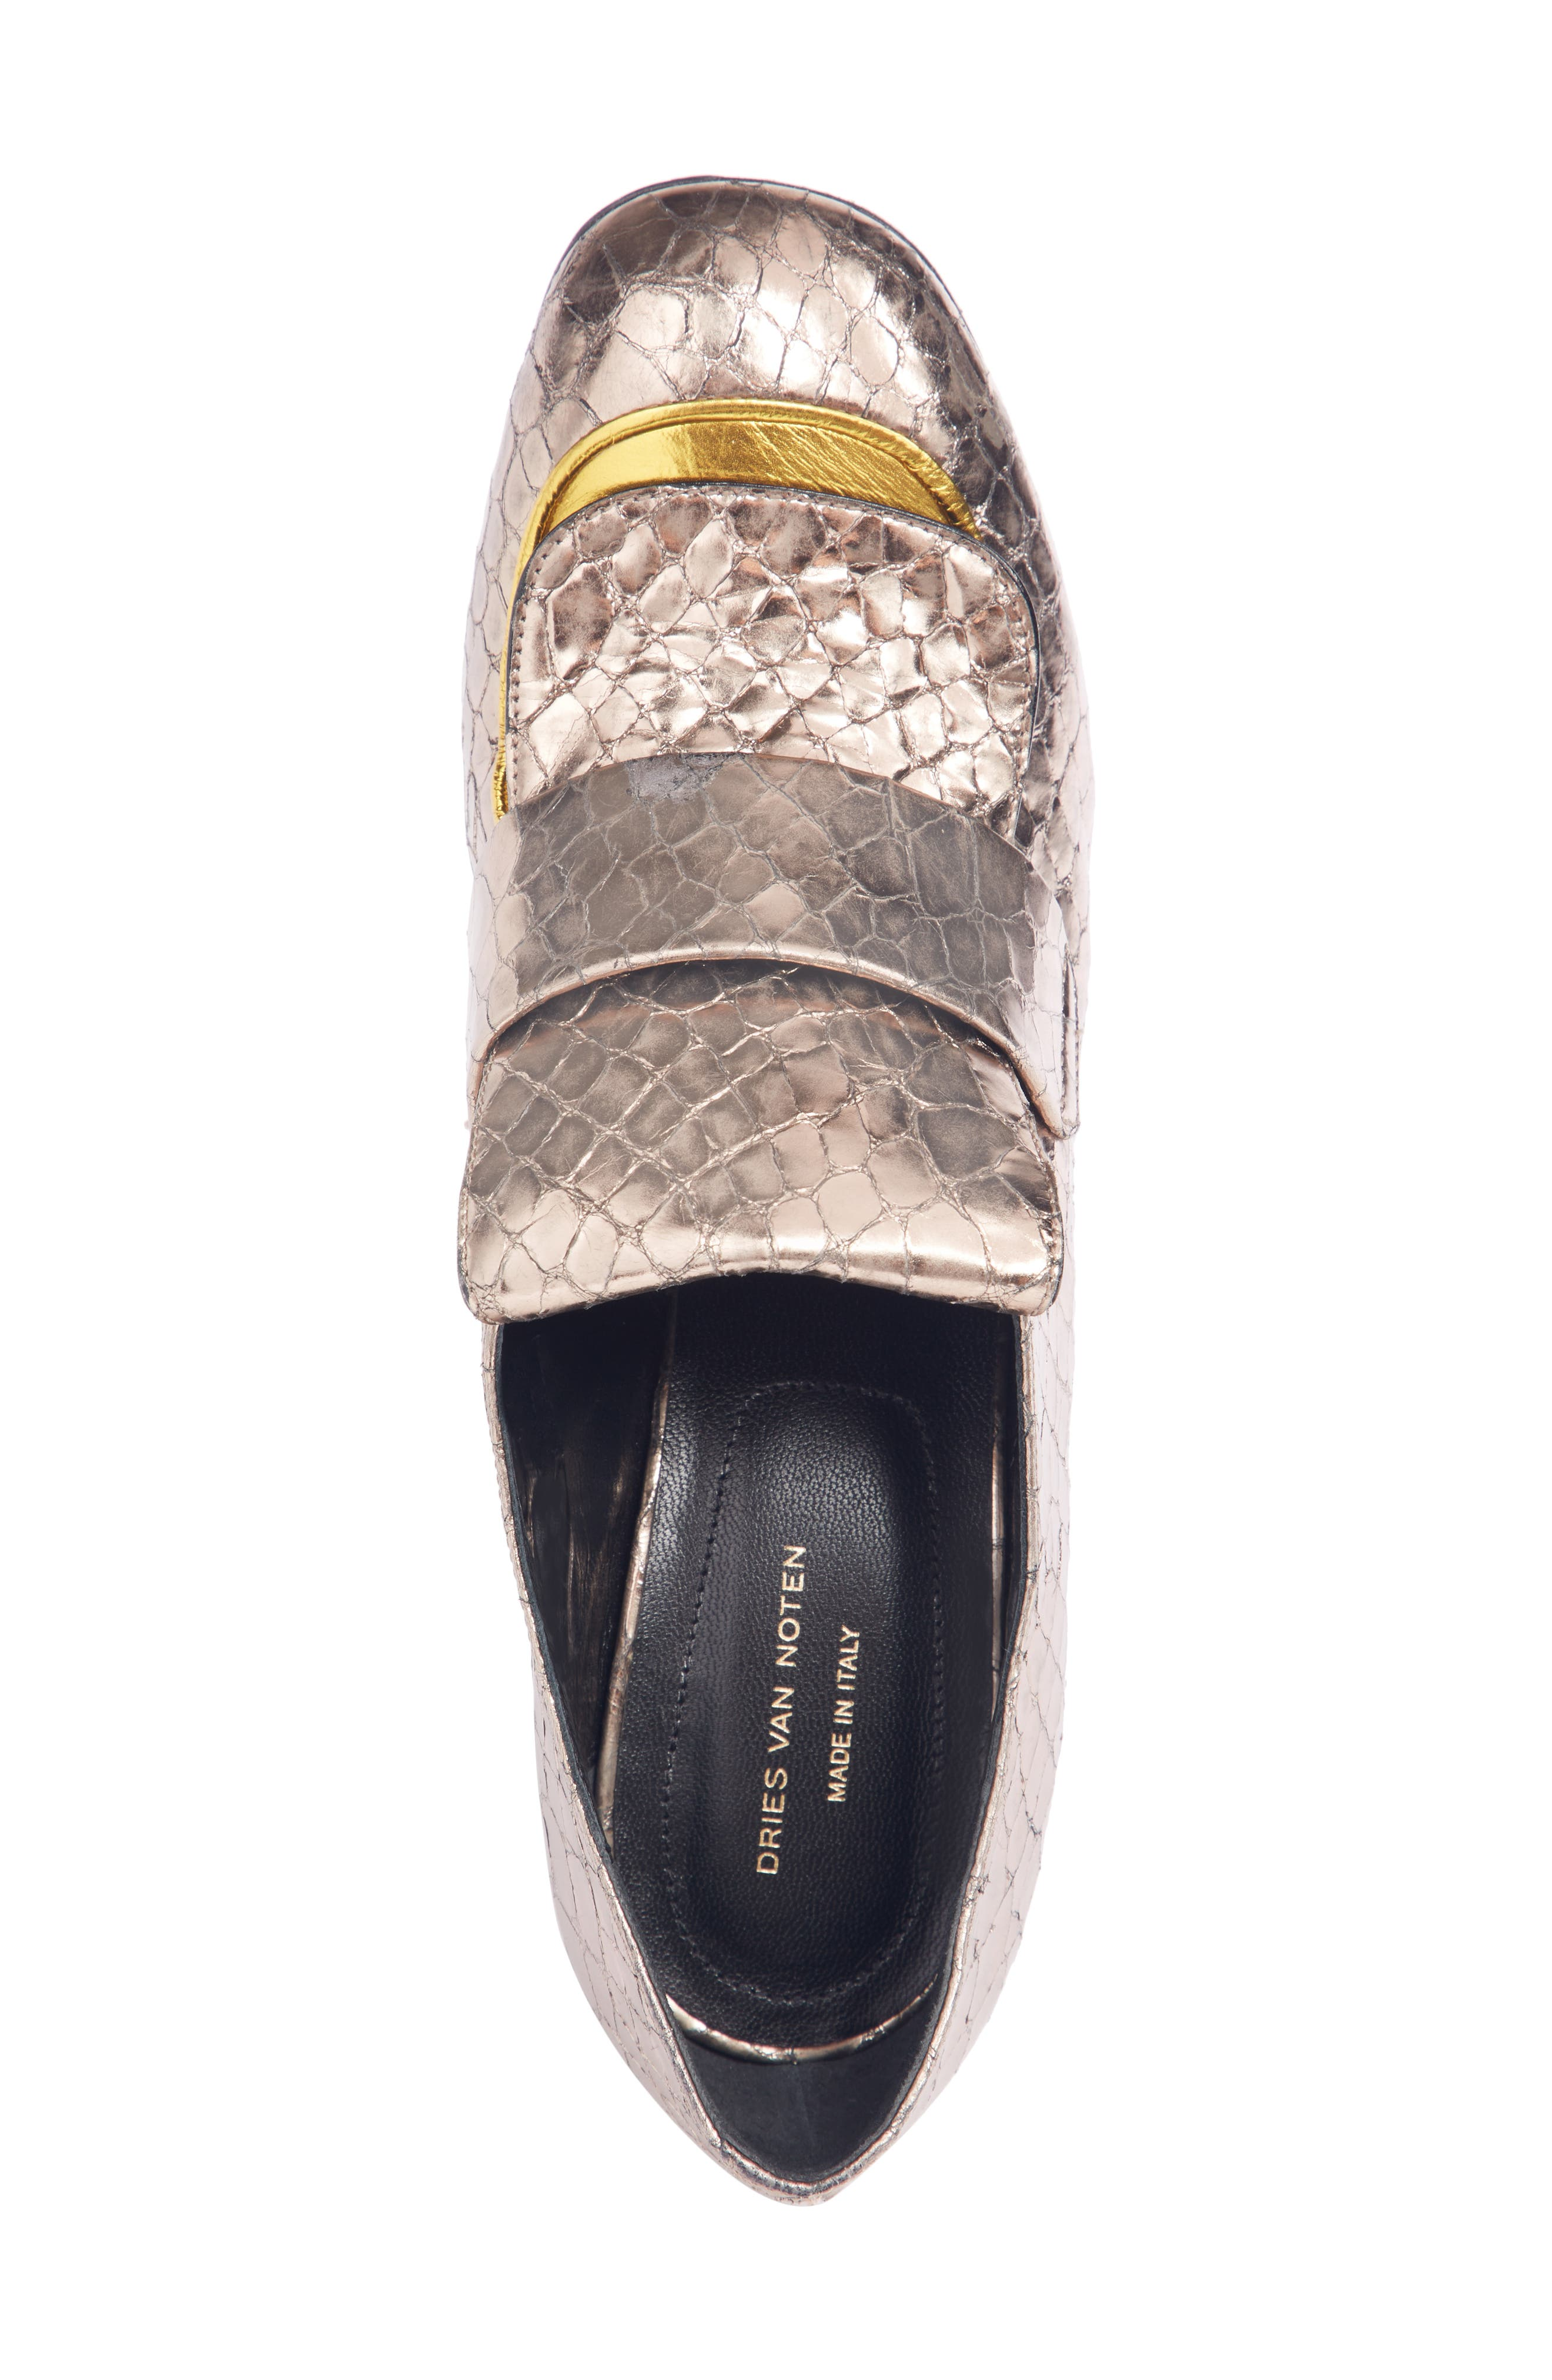 Reptile Loafer Pump,                             Alternate thumbnail 4, color,                             SILVER